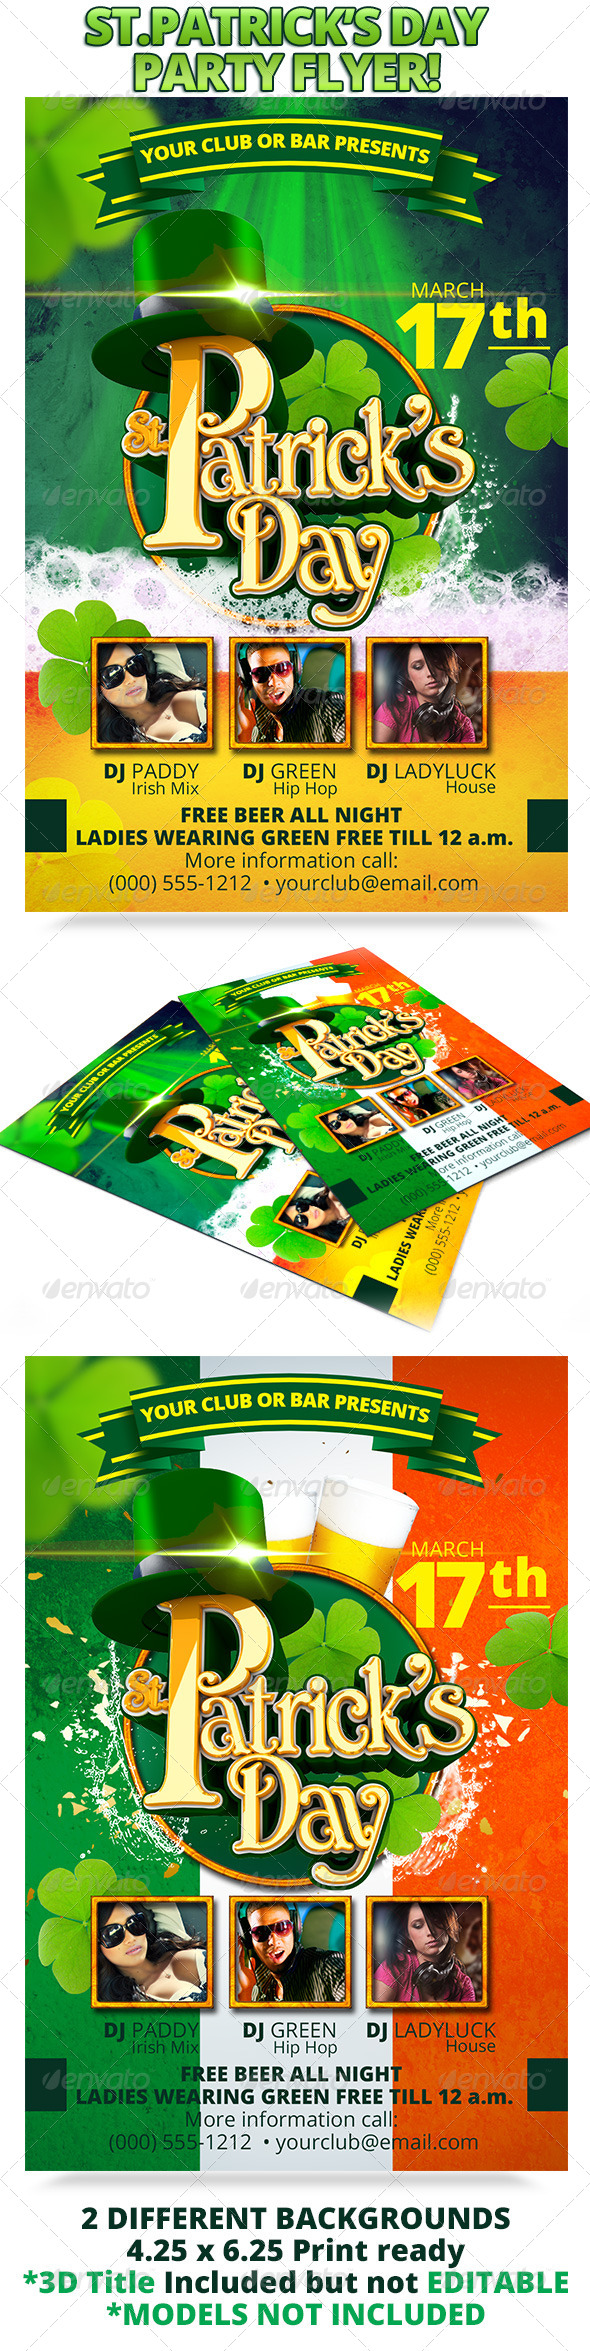 GraphicRiver St Patrick s Day Party Flyer 4148572